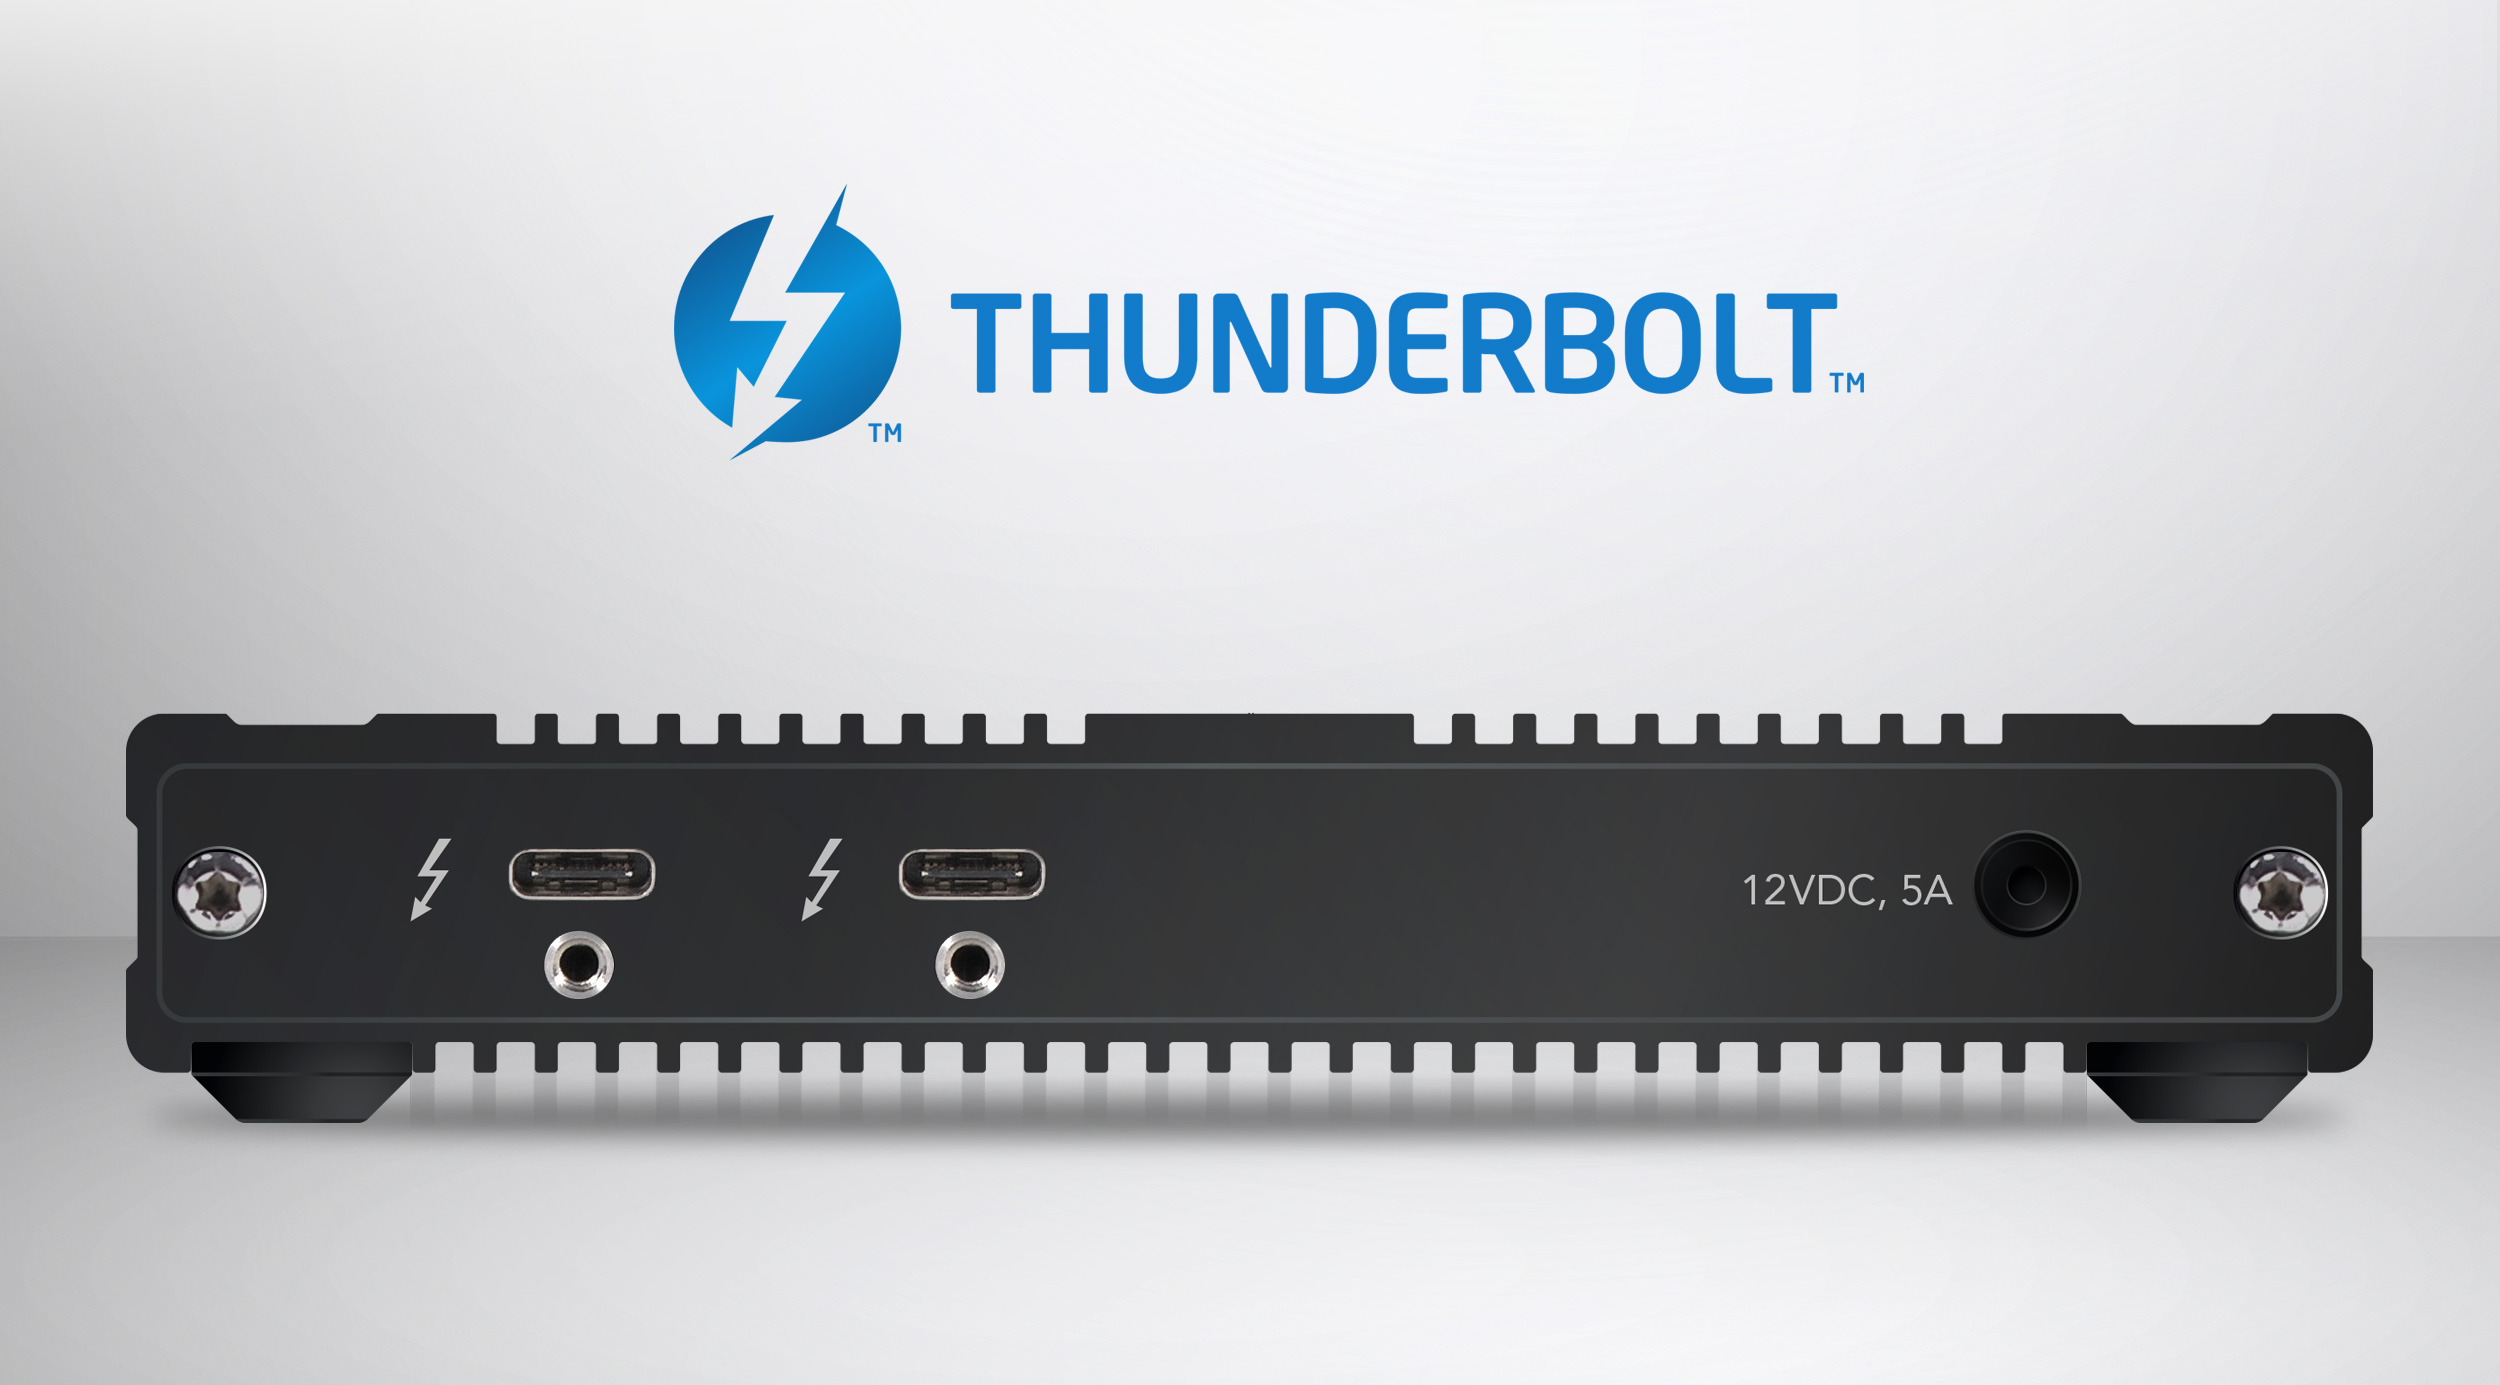 SF3 Series - SxS PRO X Card Reader Thunderbolt 3 Ports